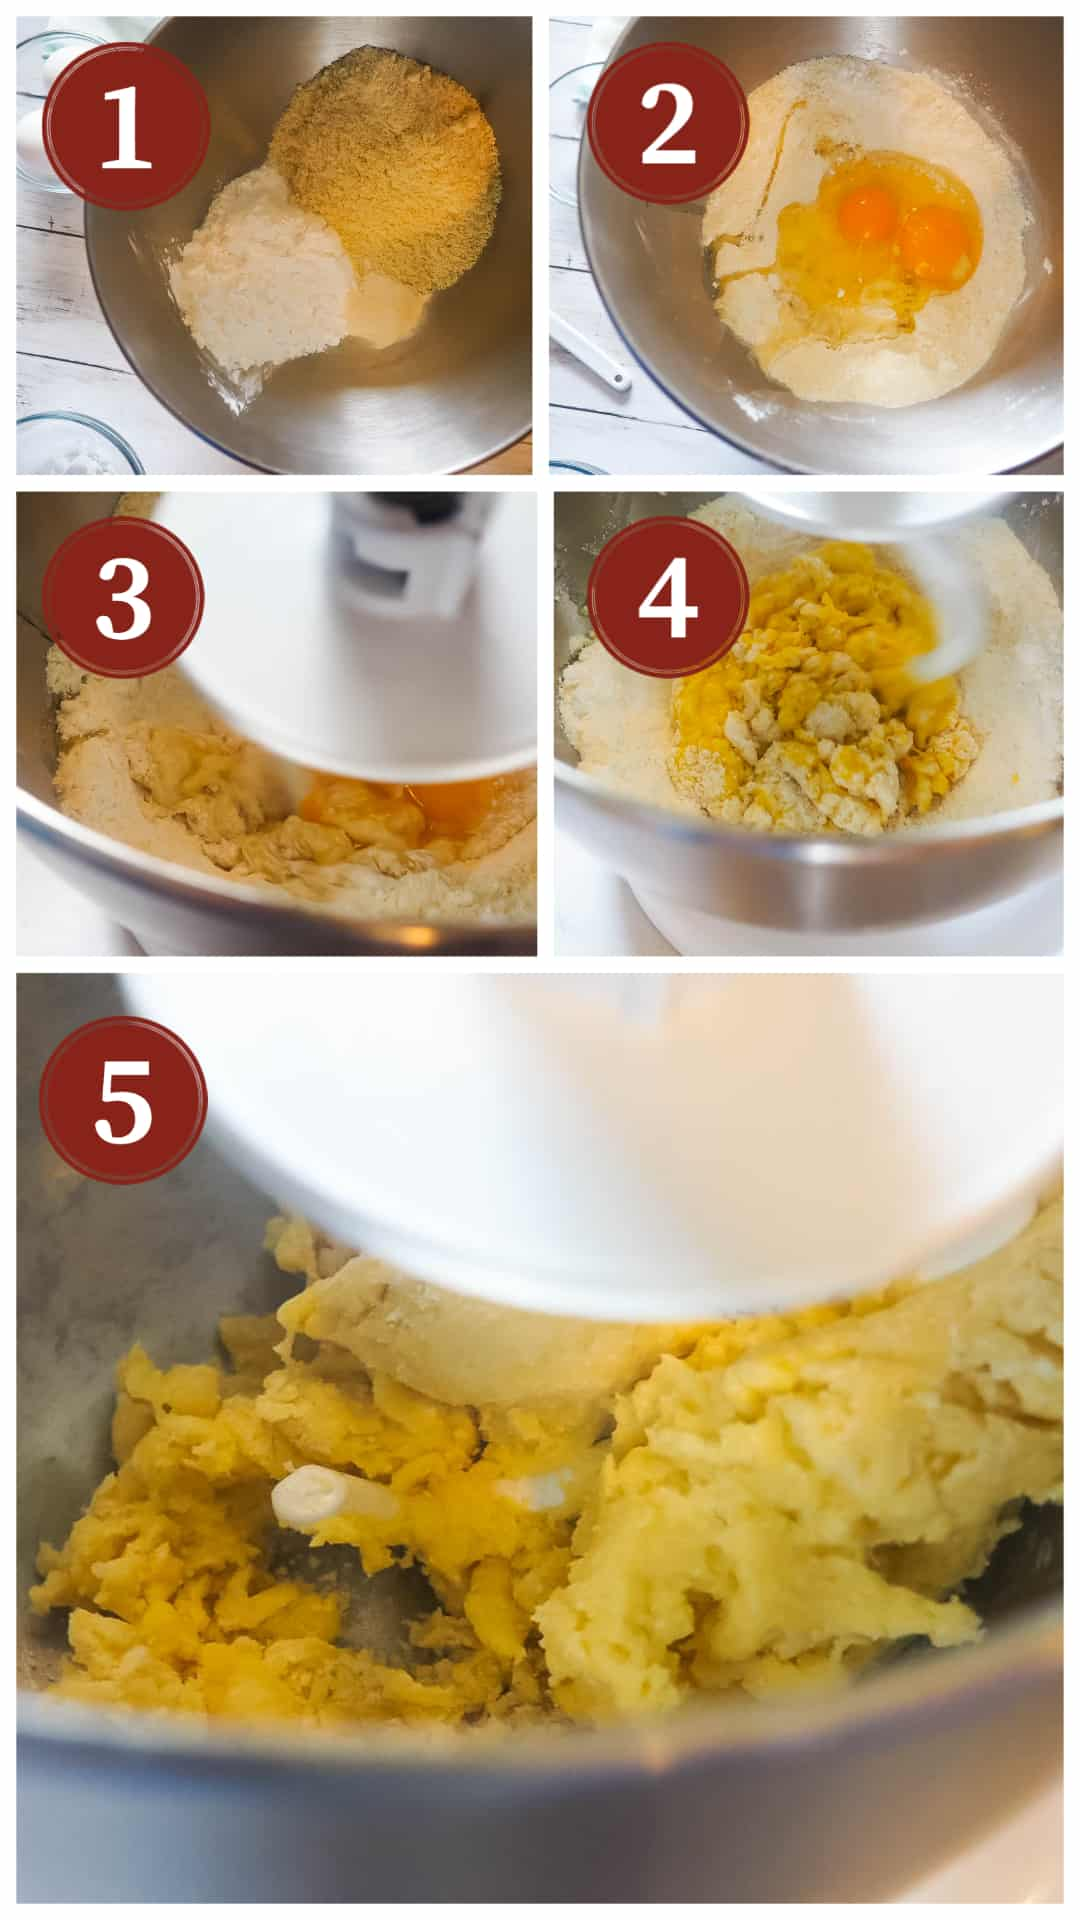 A collage of images showing the process of making homemade paleo pasta, steps 1 - 5.